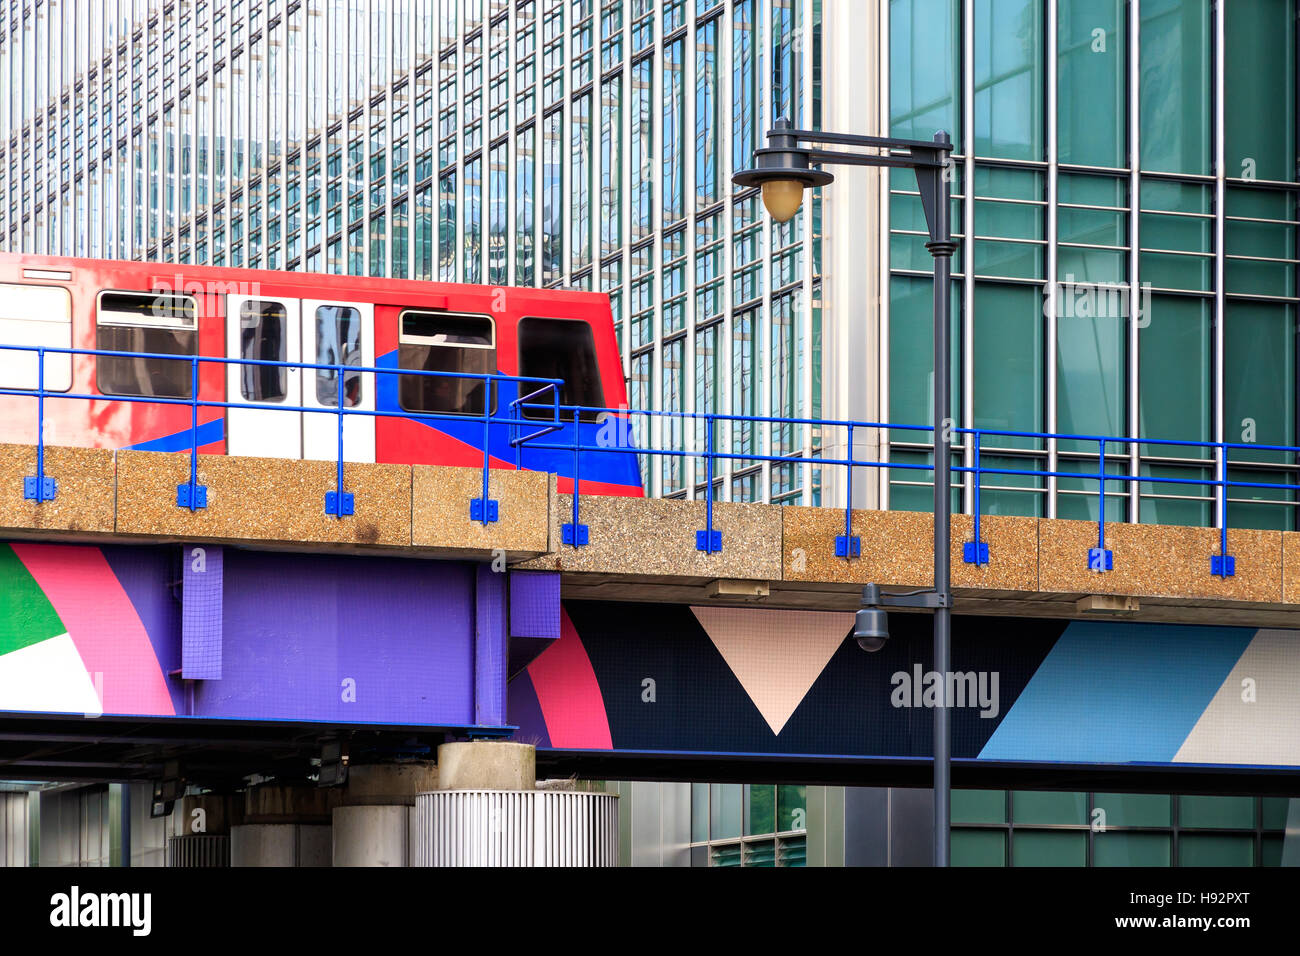 Docklands Light Railway in Canary Wharf - Stock Image